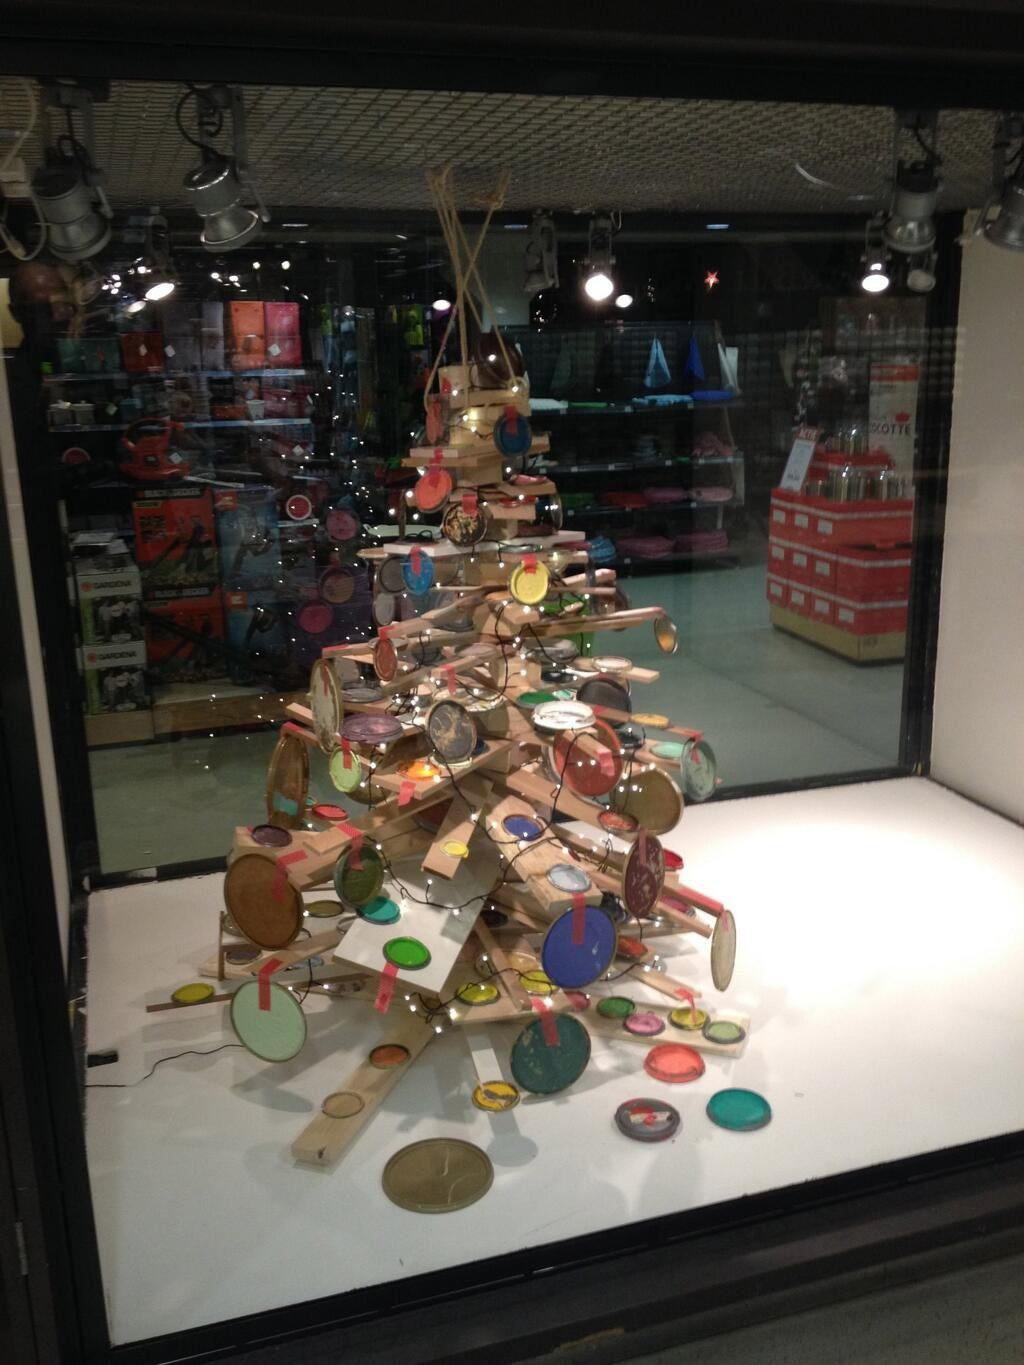 The diy do it yourself christmas treestyling by nijhof baarn the diy do it yourself christmas treestyling by nijhof baarn solutioingenieria Images